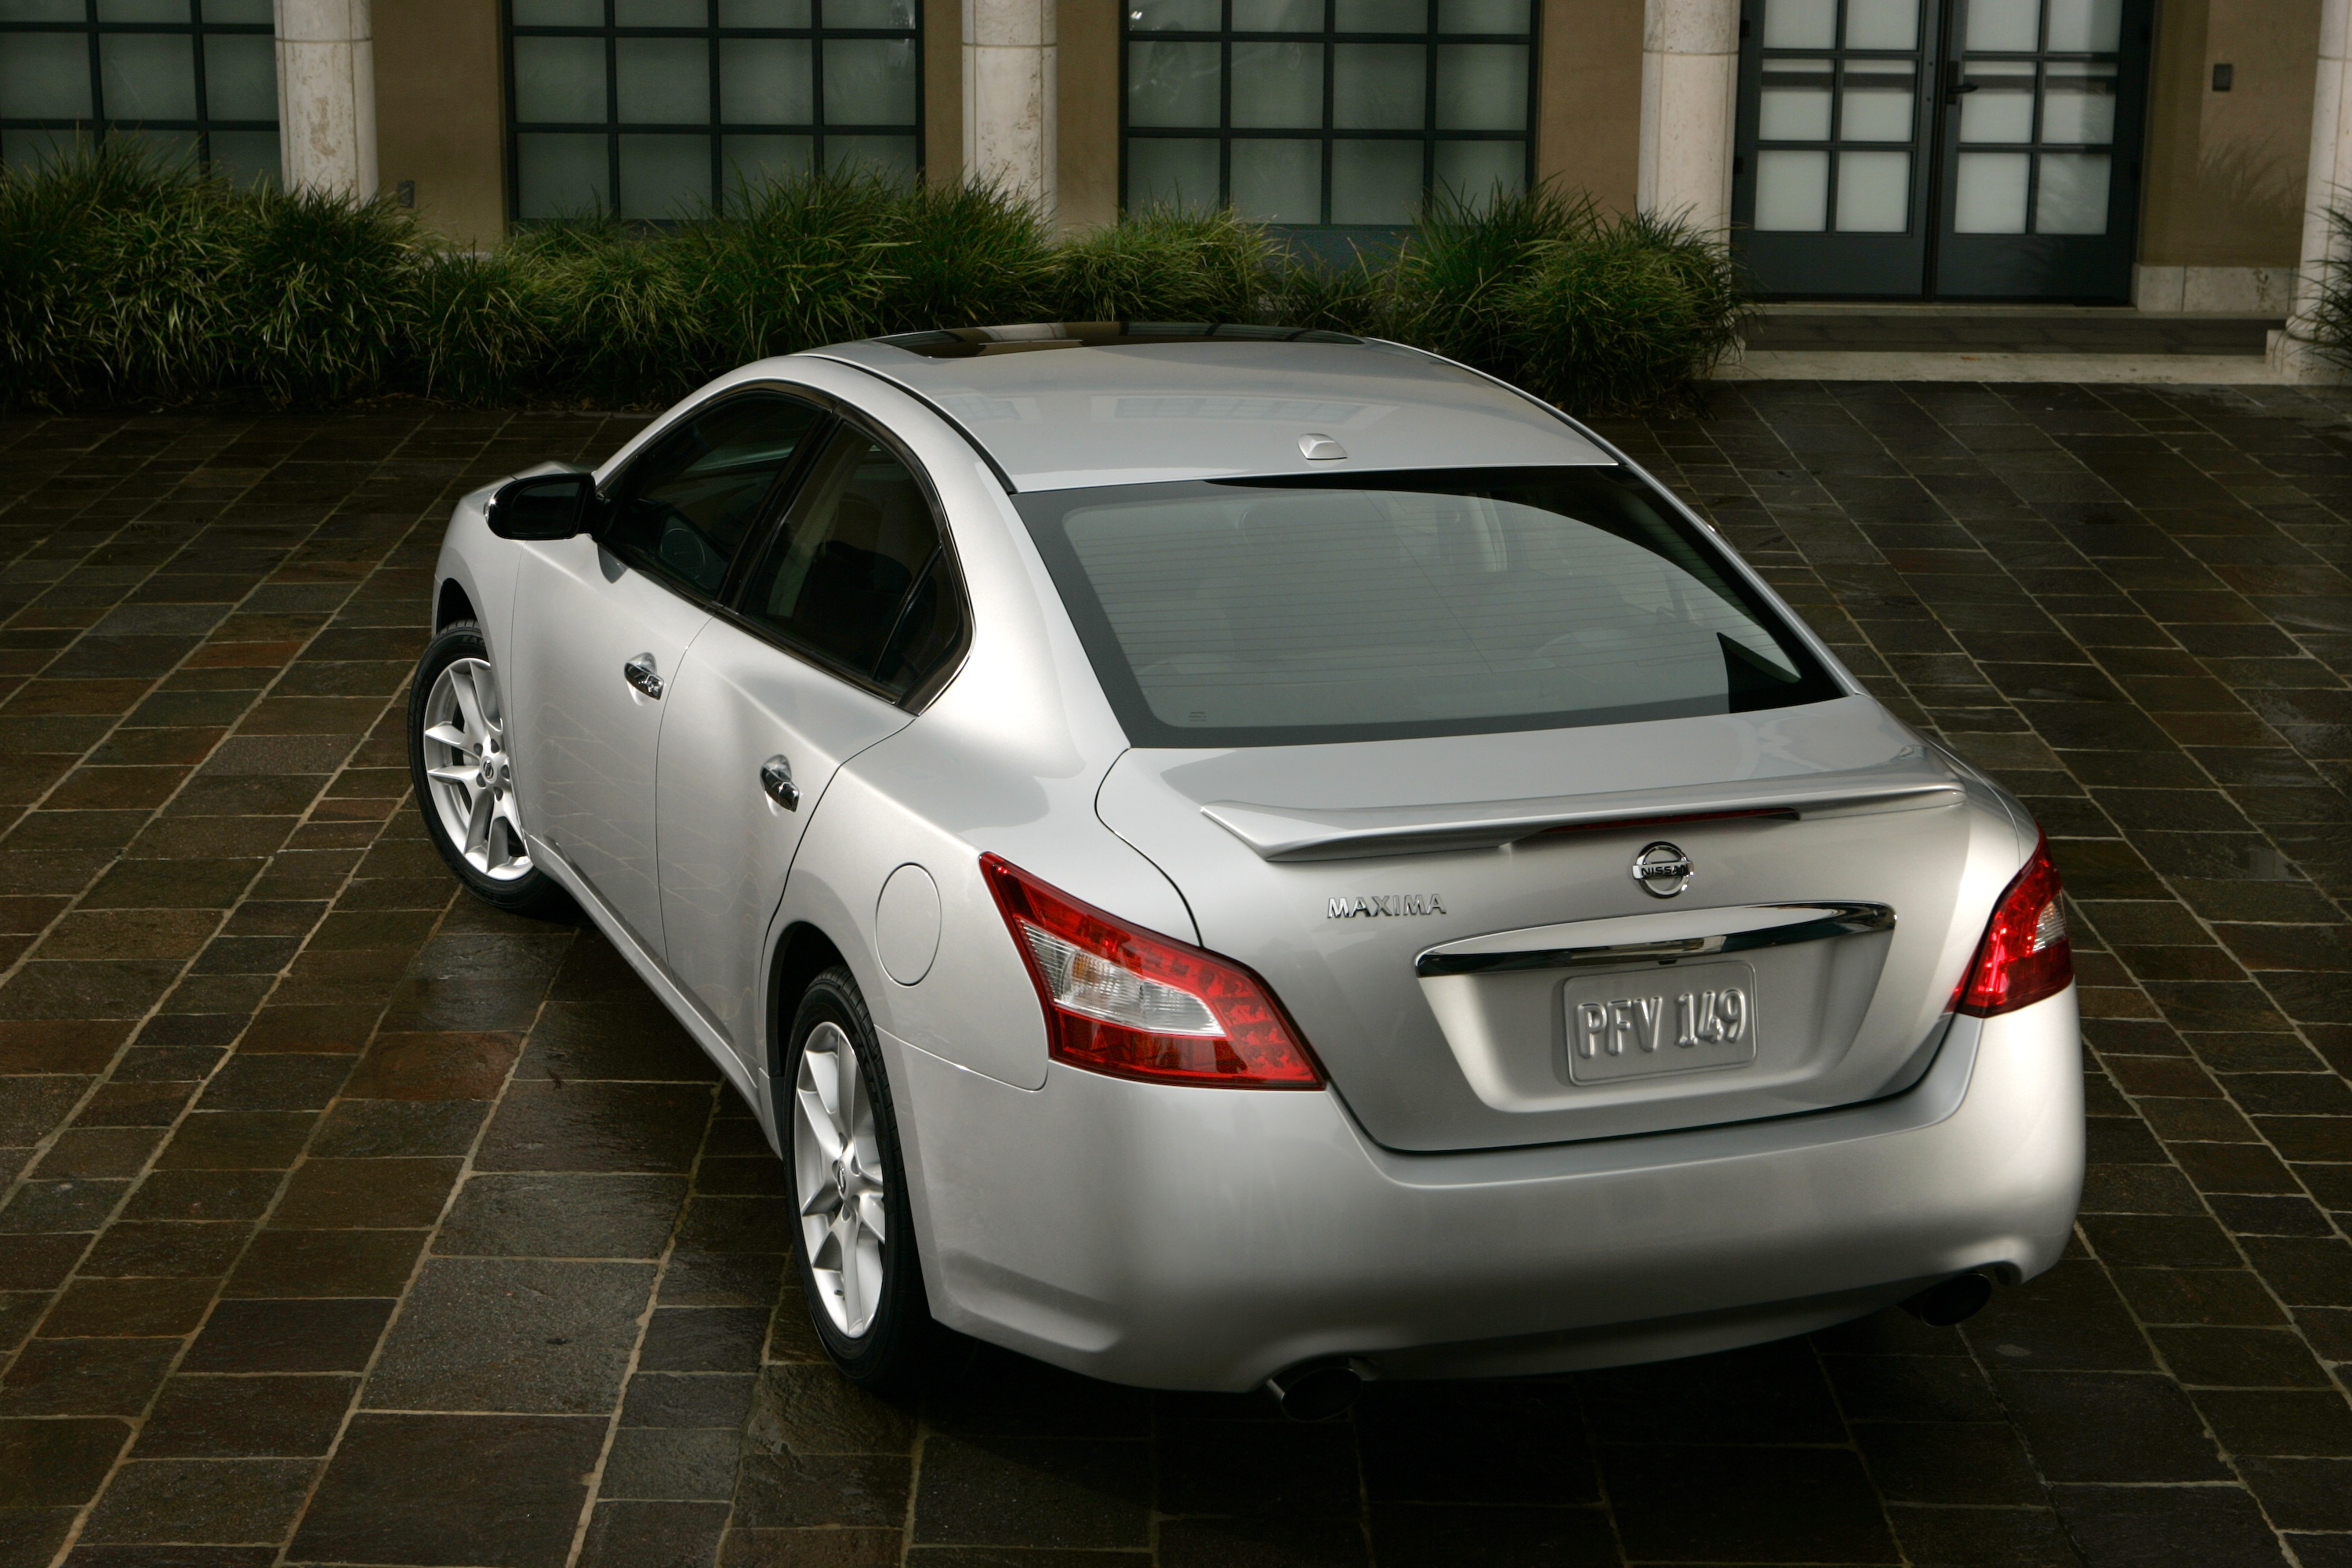 Interestingly, In Overall Interior Passenger Volume The Compact Sentra Has  97.7 Cubic Feet Of Interior Space While The Mid Size Maxima Has Just A Bit  Less ...